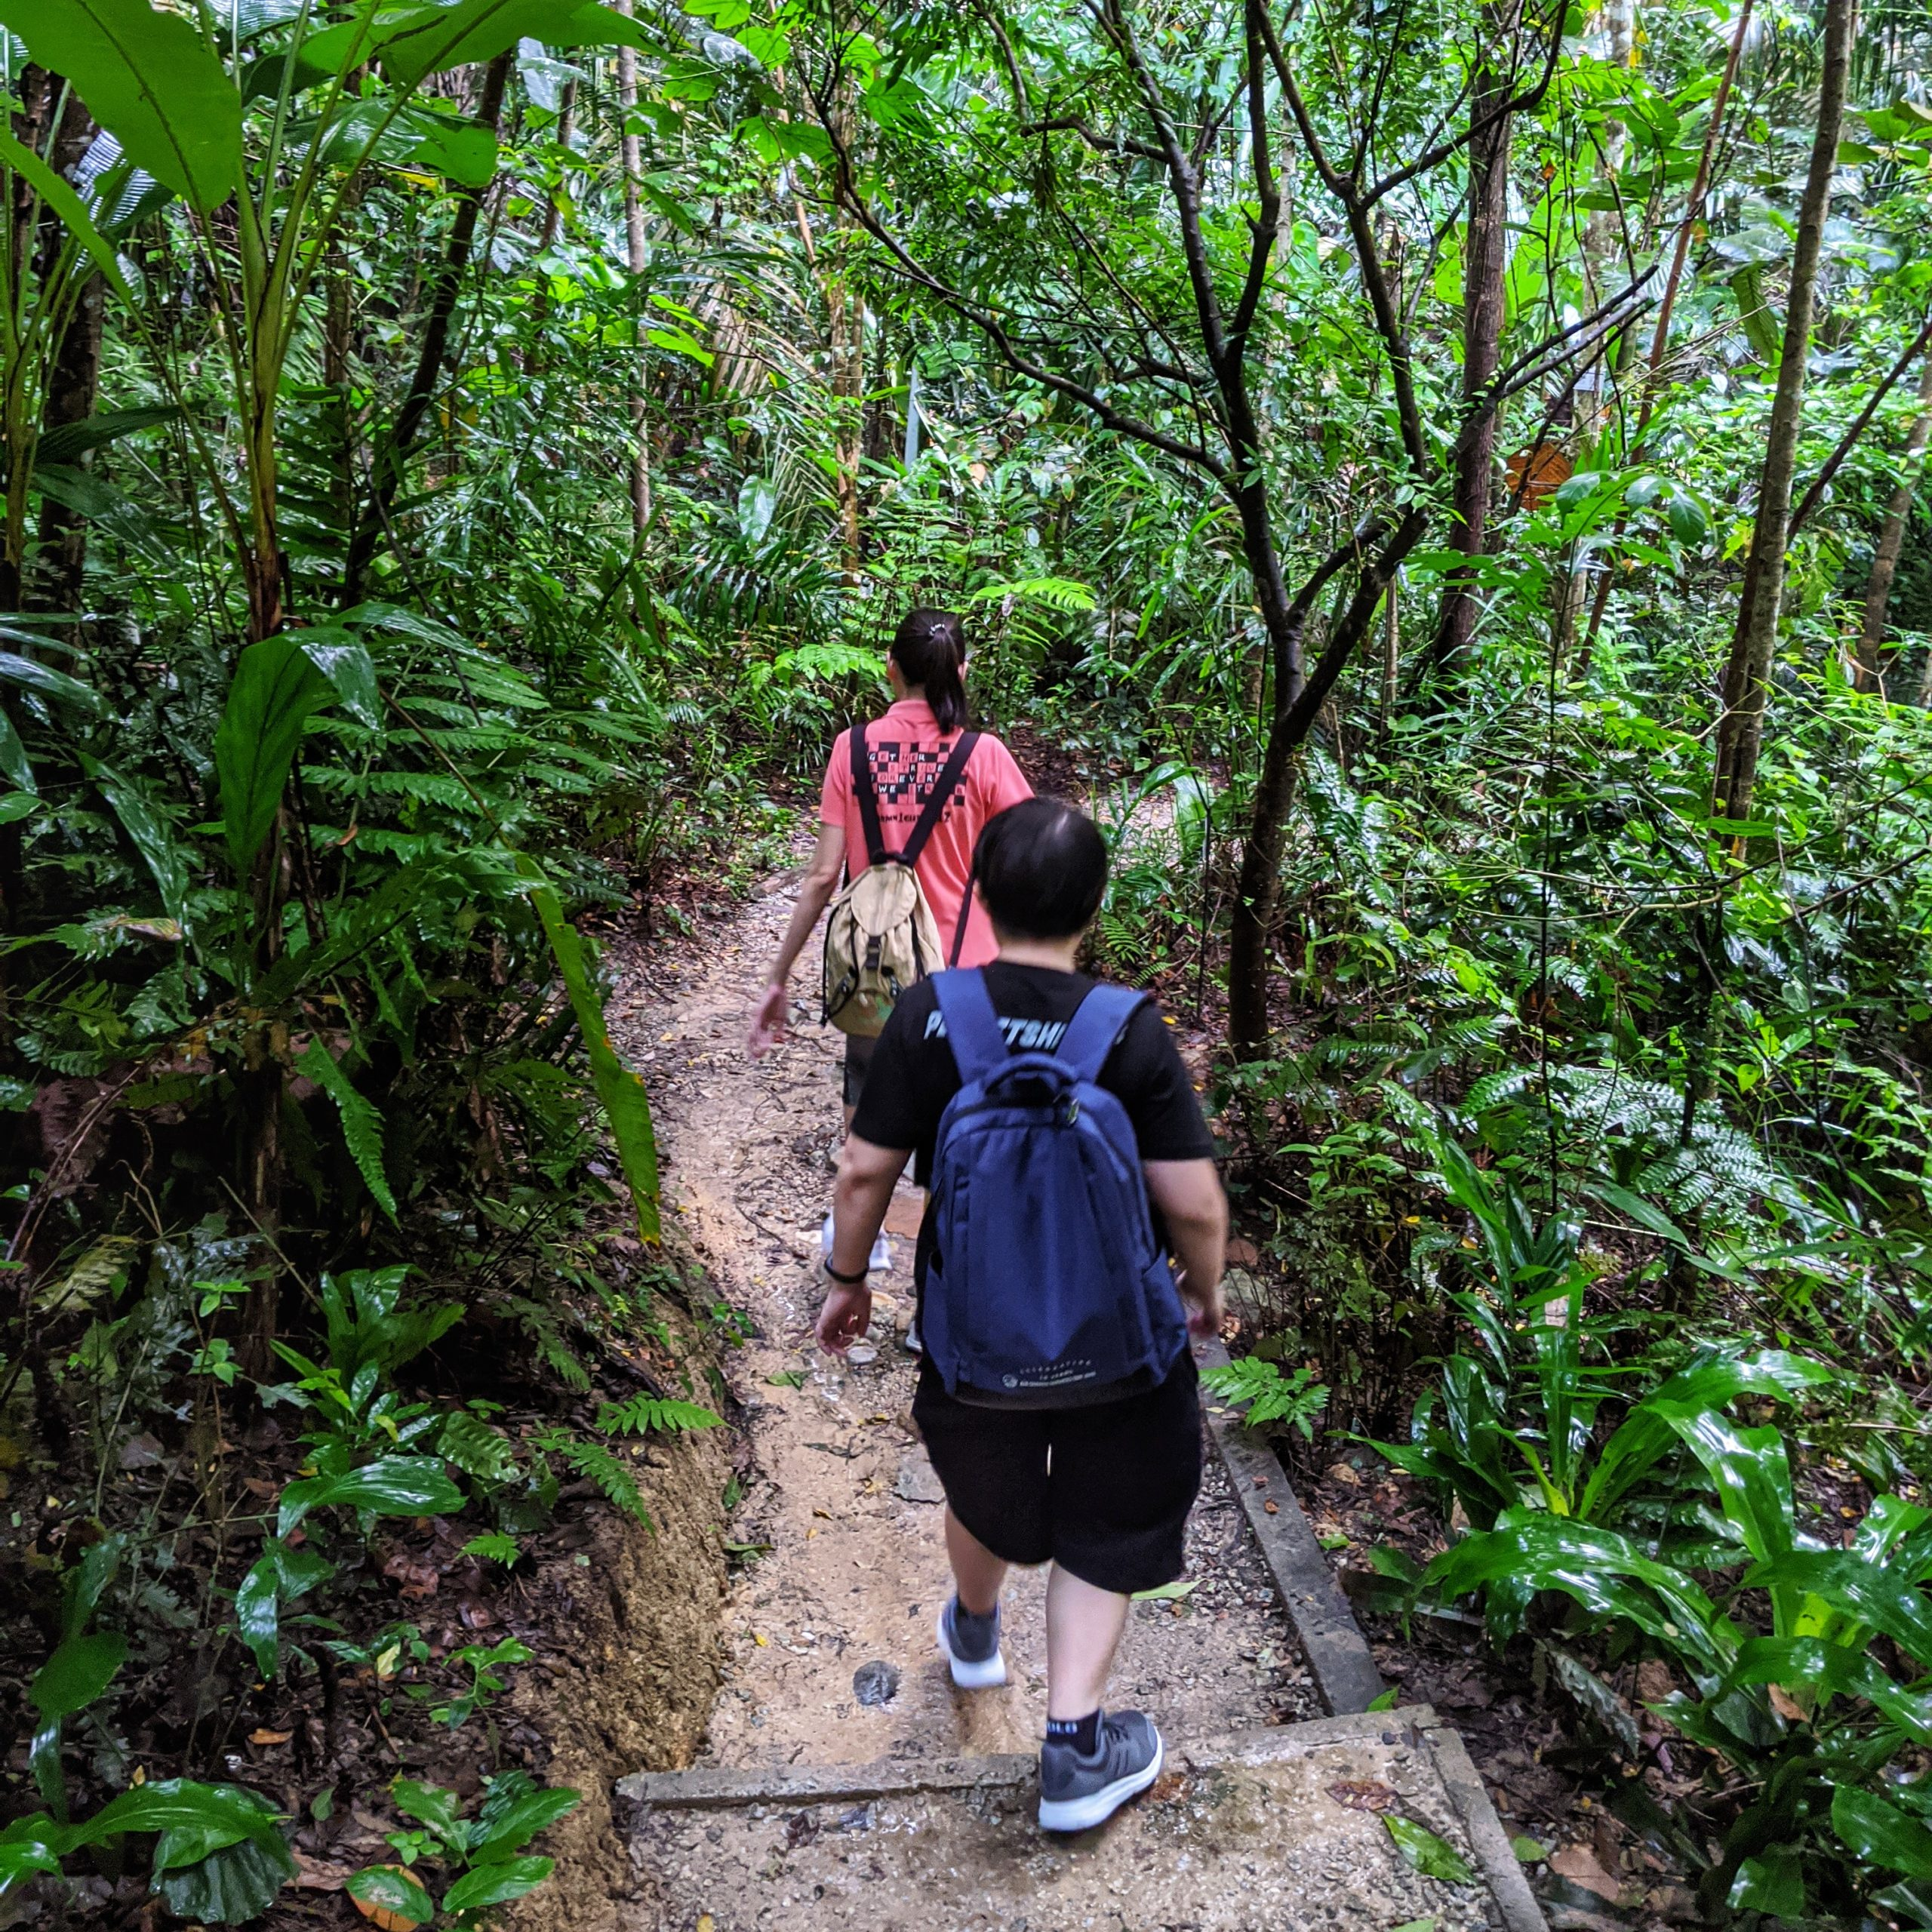 Hiking at Taman Tugu During RMCO June 2020